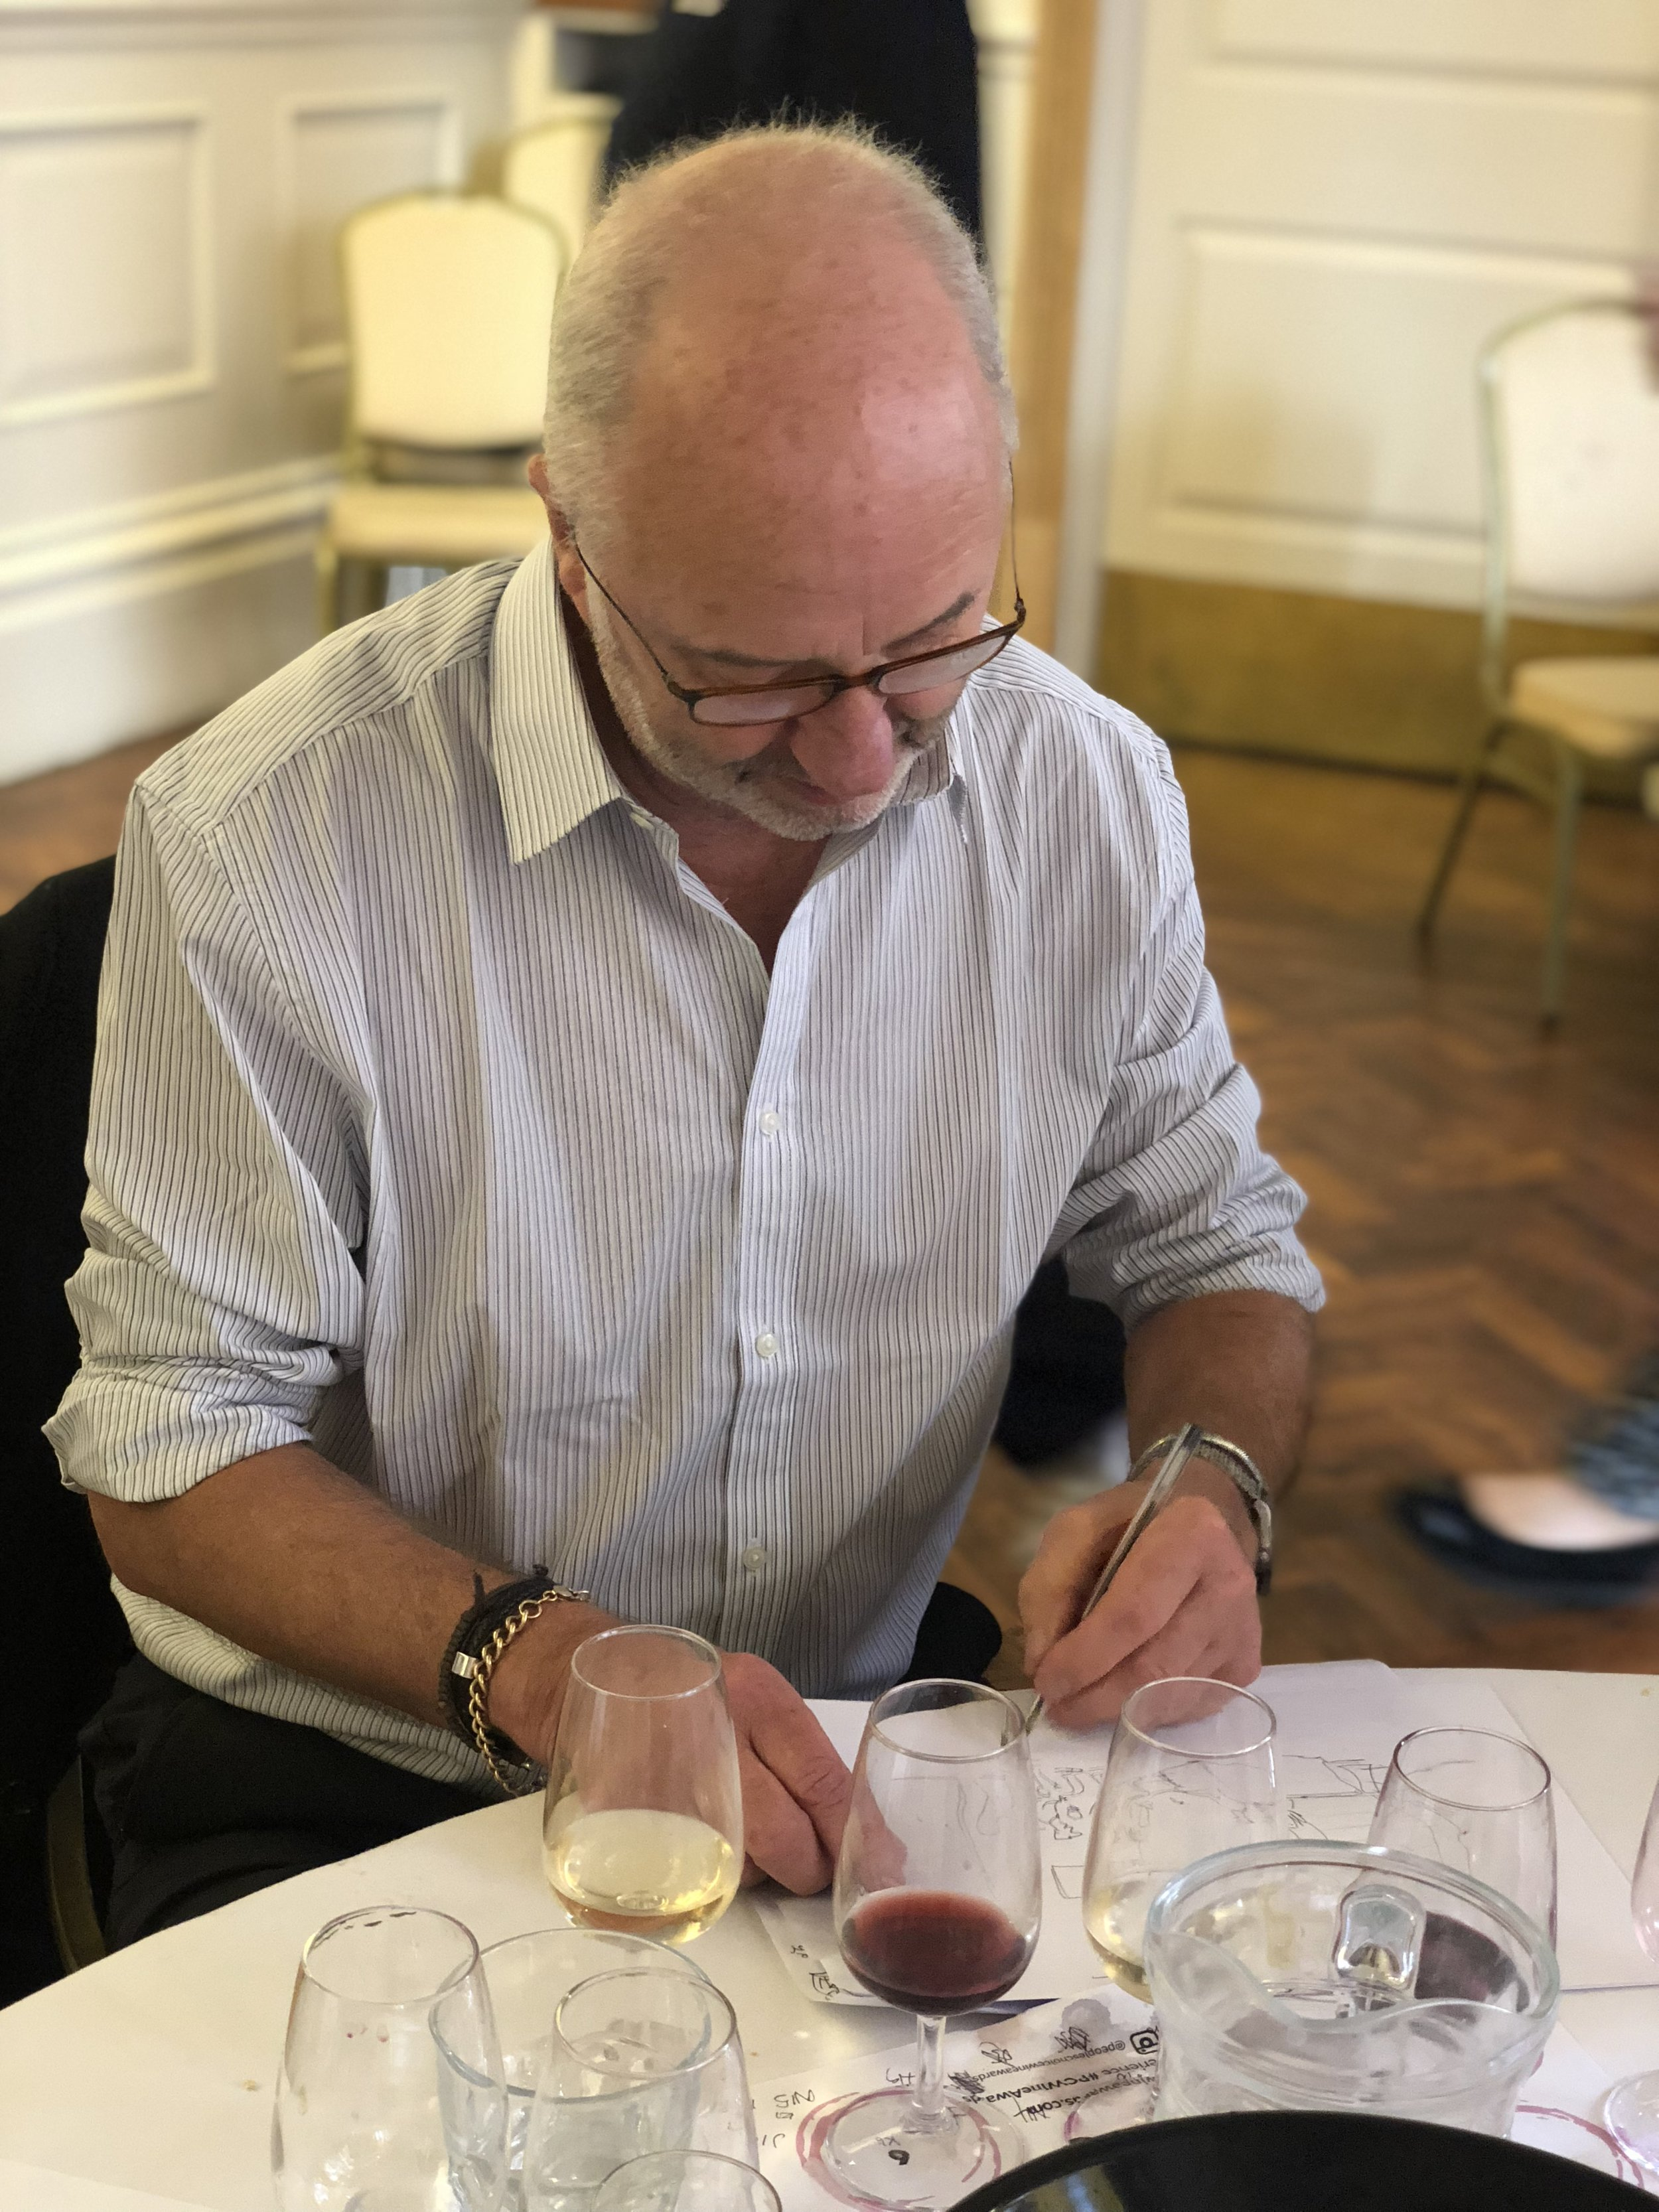 Tony Husband of Private Eye sketching in between, a unique artist among us! (Image: Sumi Sarma)